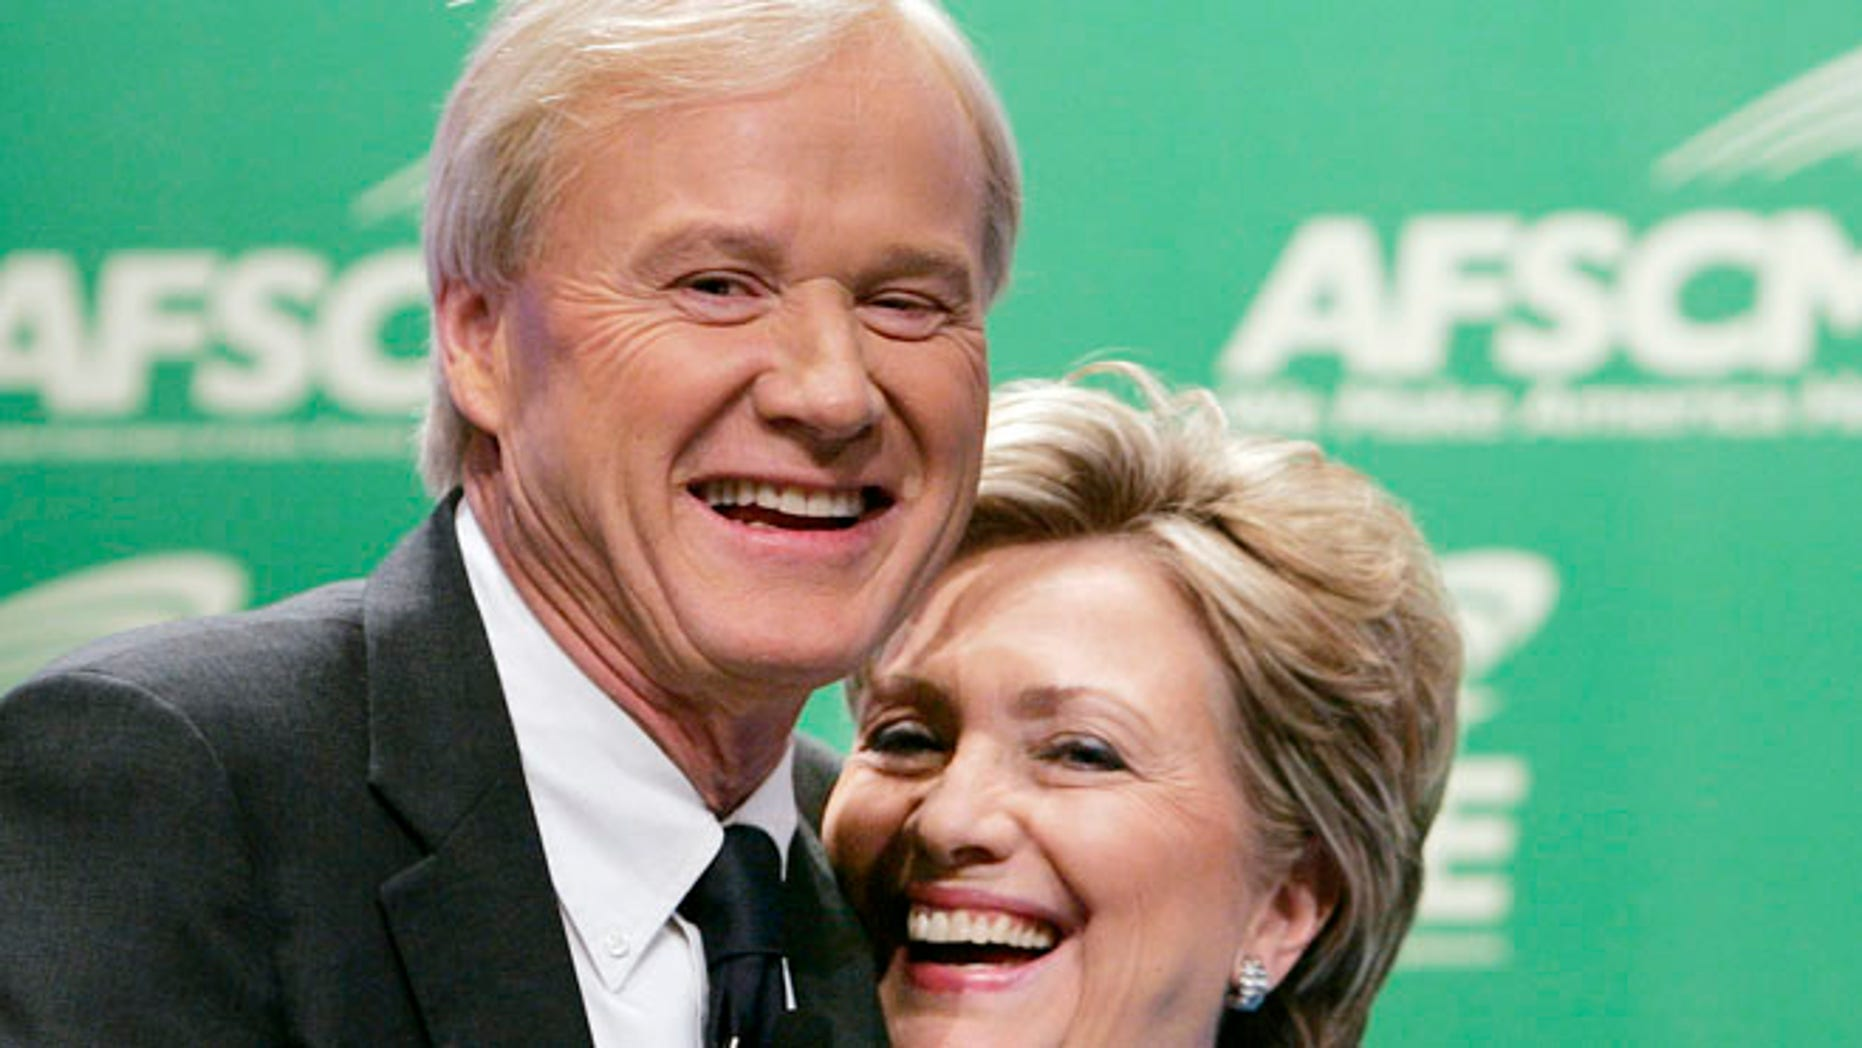 FILE: 2007: Presidential candidate Hillary Clinton, D-N.Y., and MSNBC personality Chris Matthews at a AFSCME Democratic Presidential Forum in Washington, D.C.